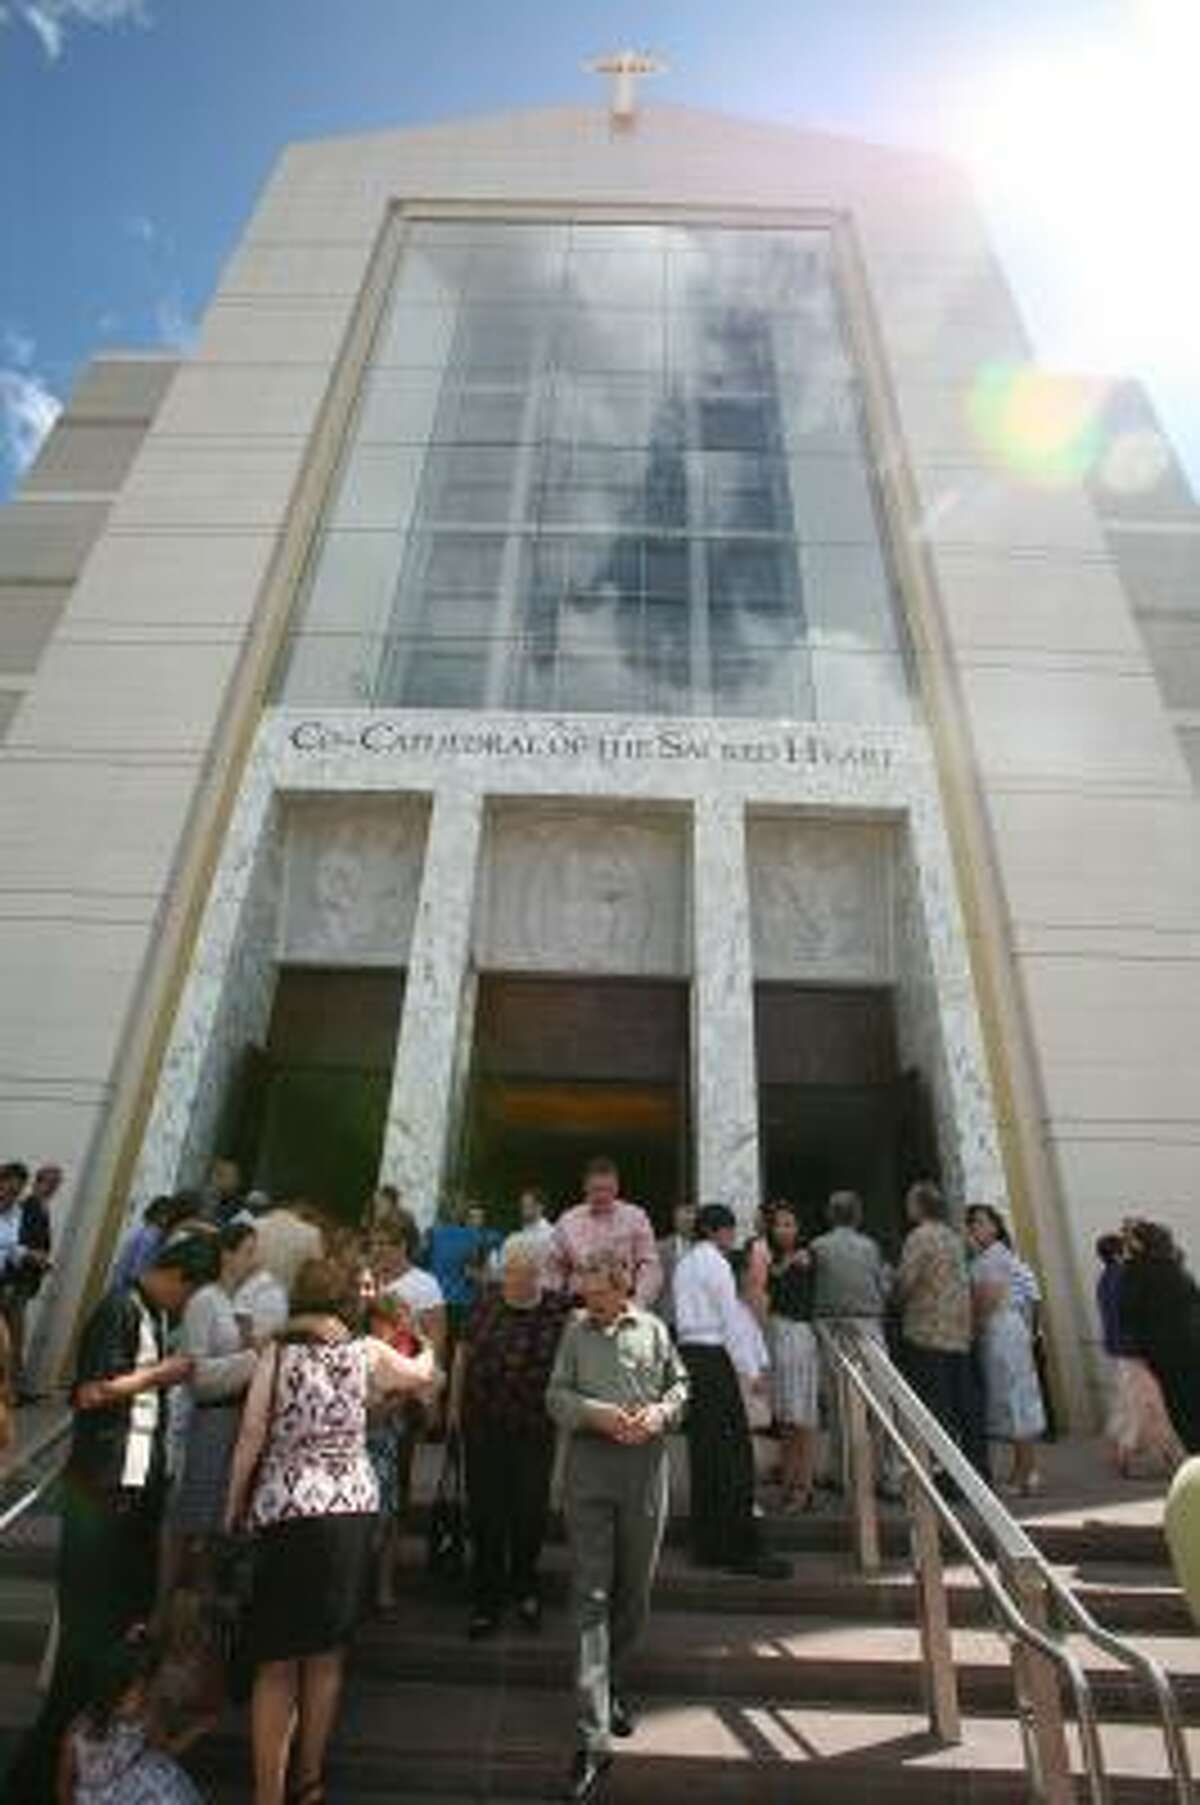 Members leave Sunday after Mass at the Co-Cathedral of the Sacred Heart. The Rev. R. Troy Gately will be departing the co-cathedral for St. John Vianney Catholic Church under the cardinal's orders.